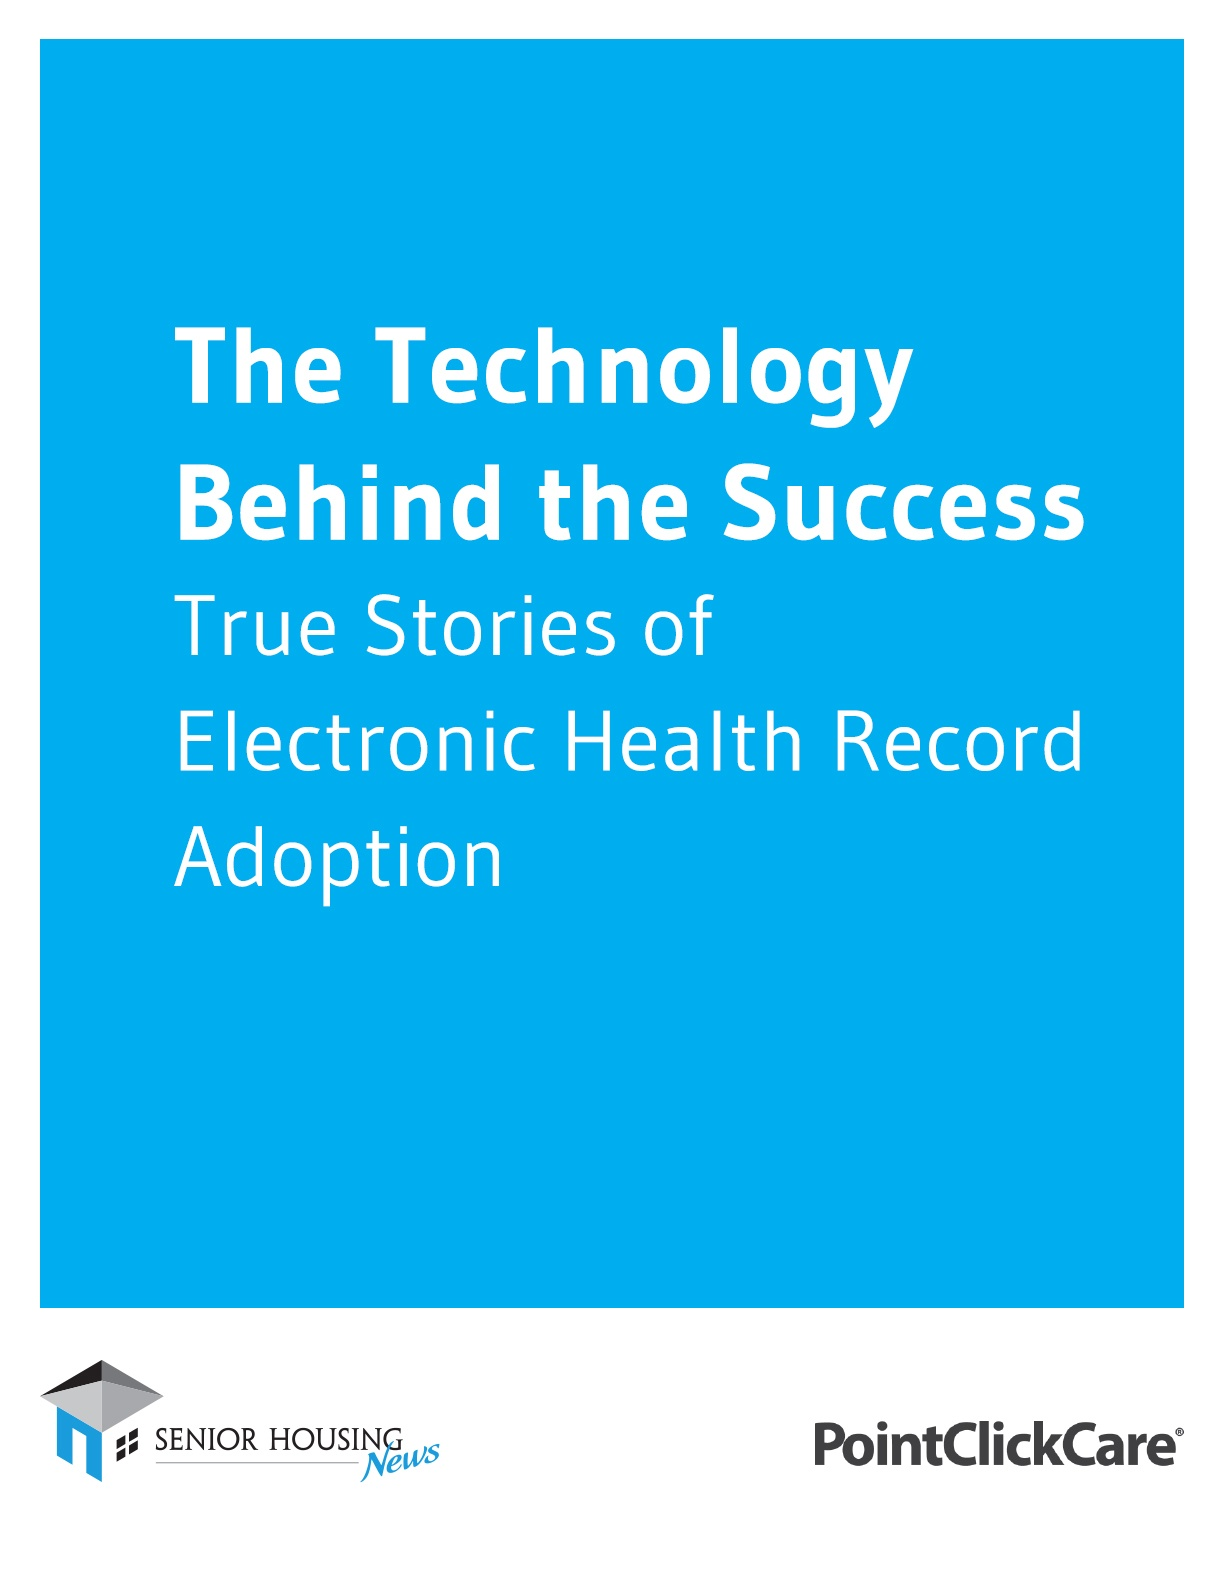 The Technology Behind the Success | True Stories of Electronic Health Record Adoption